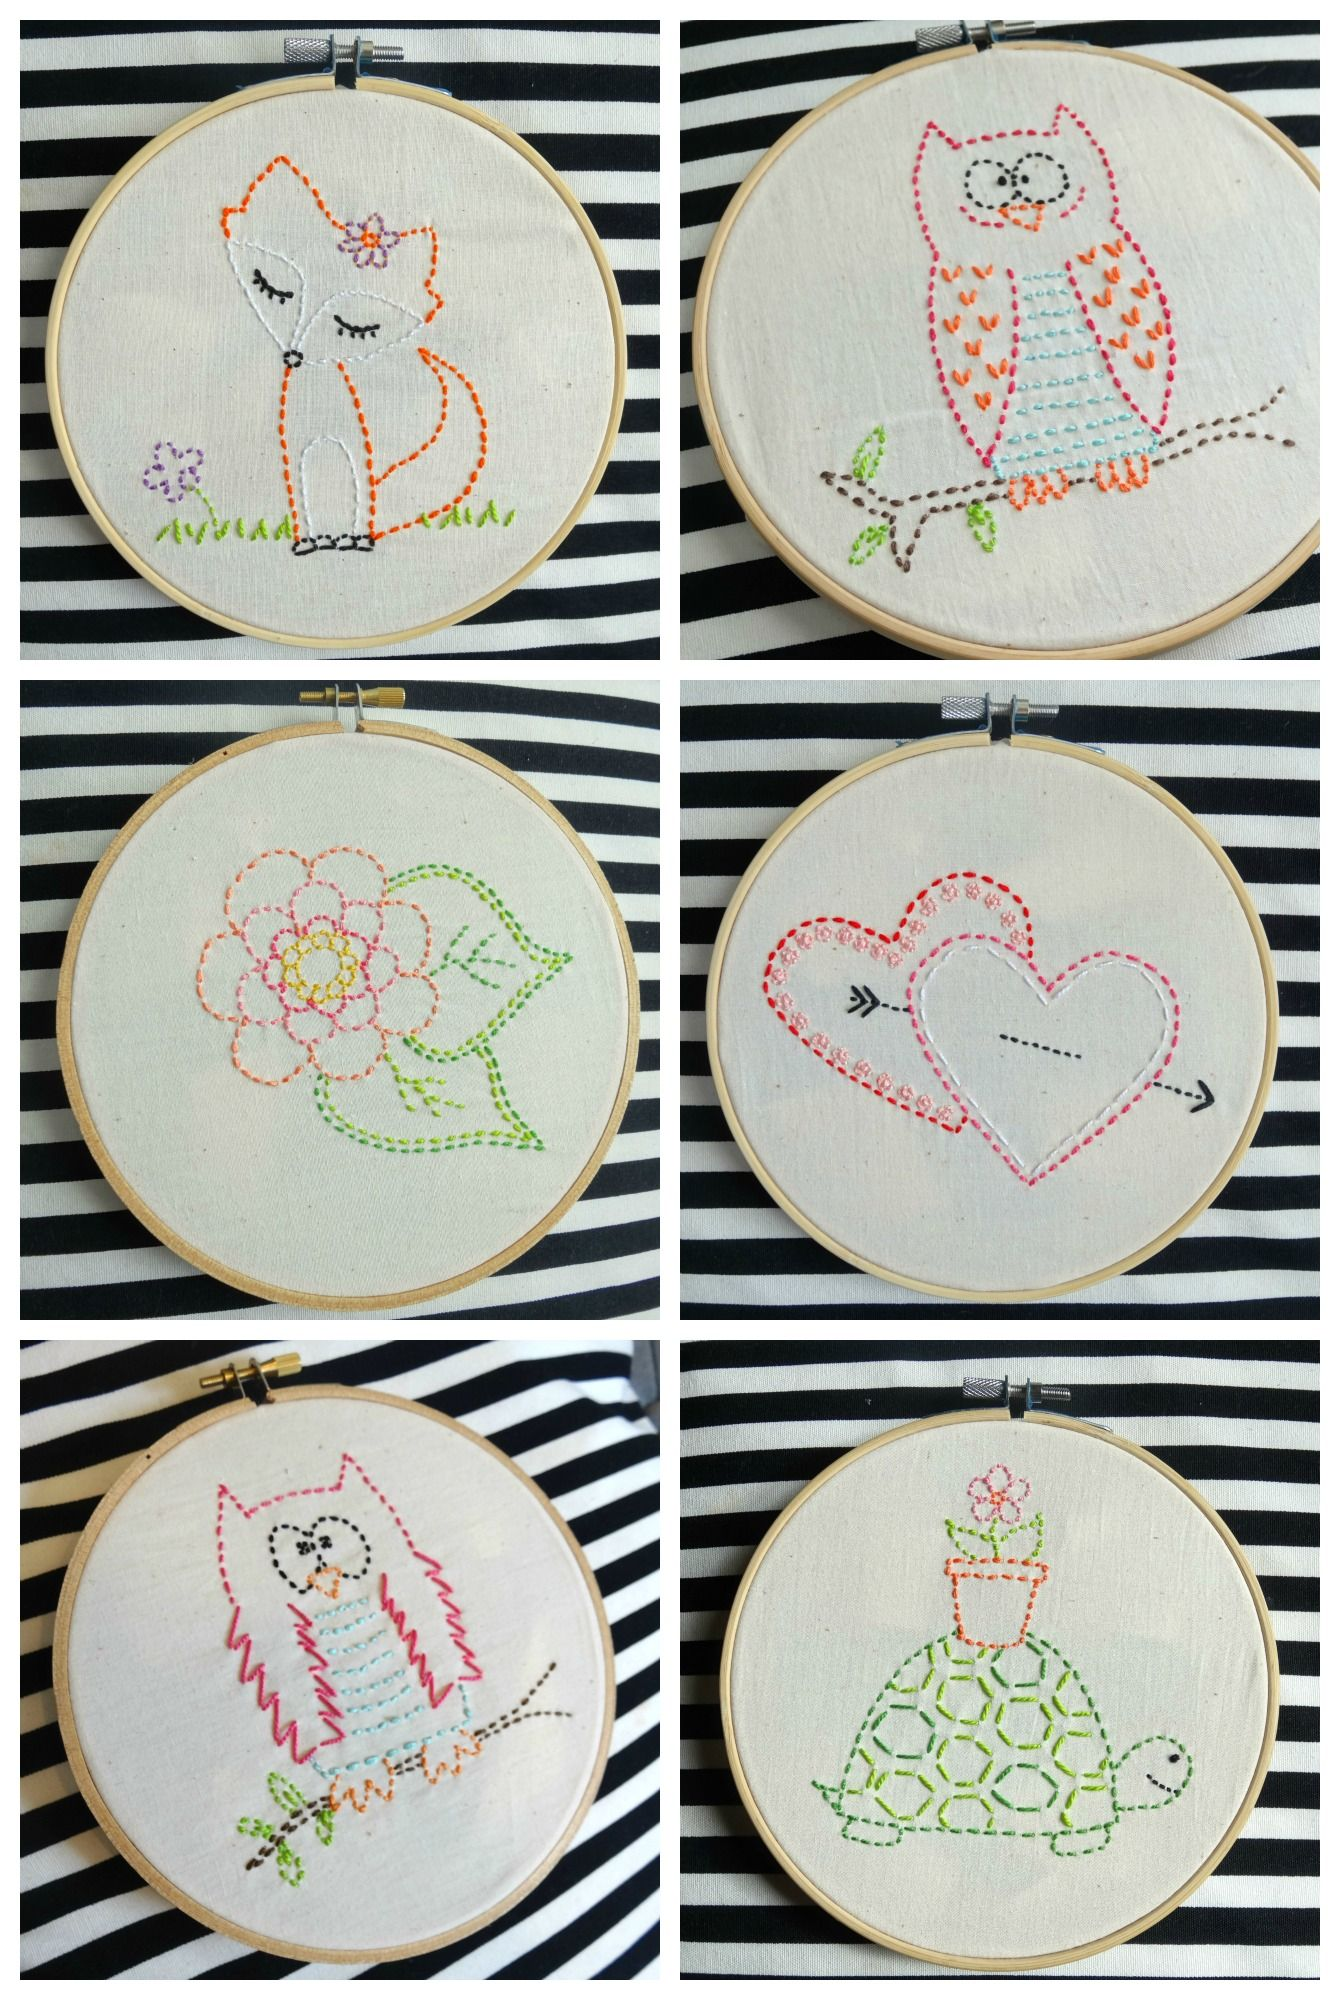 Easy Embroidery : embroidery, Simple, Embroidery, Designs, Embroidery,, Designs,